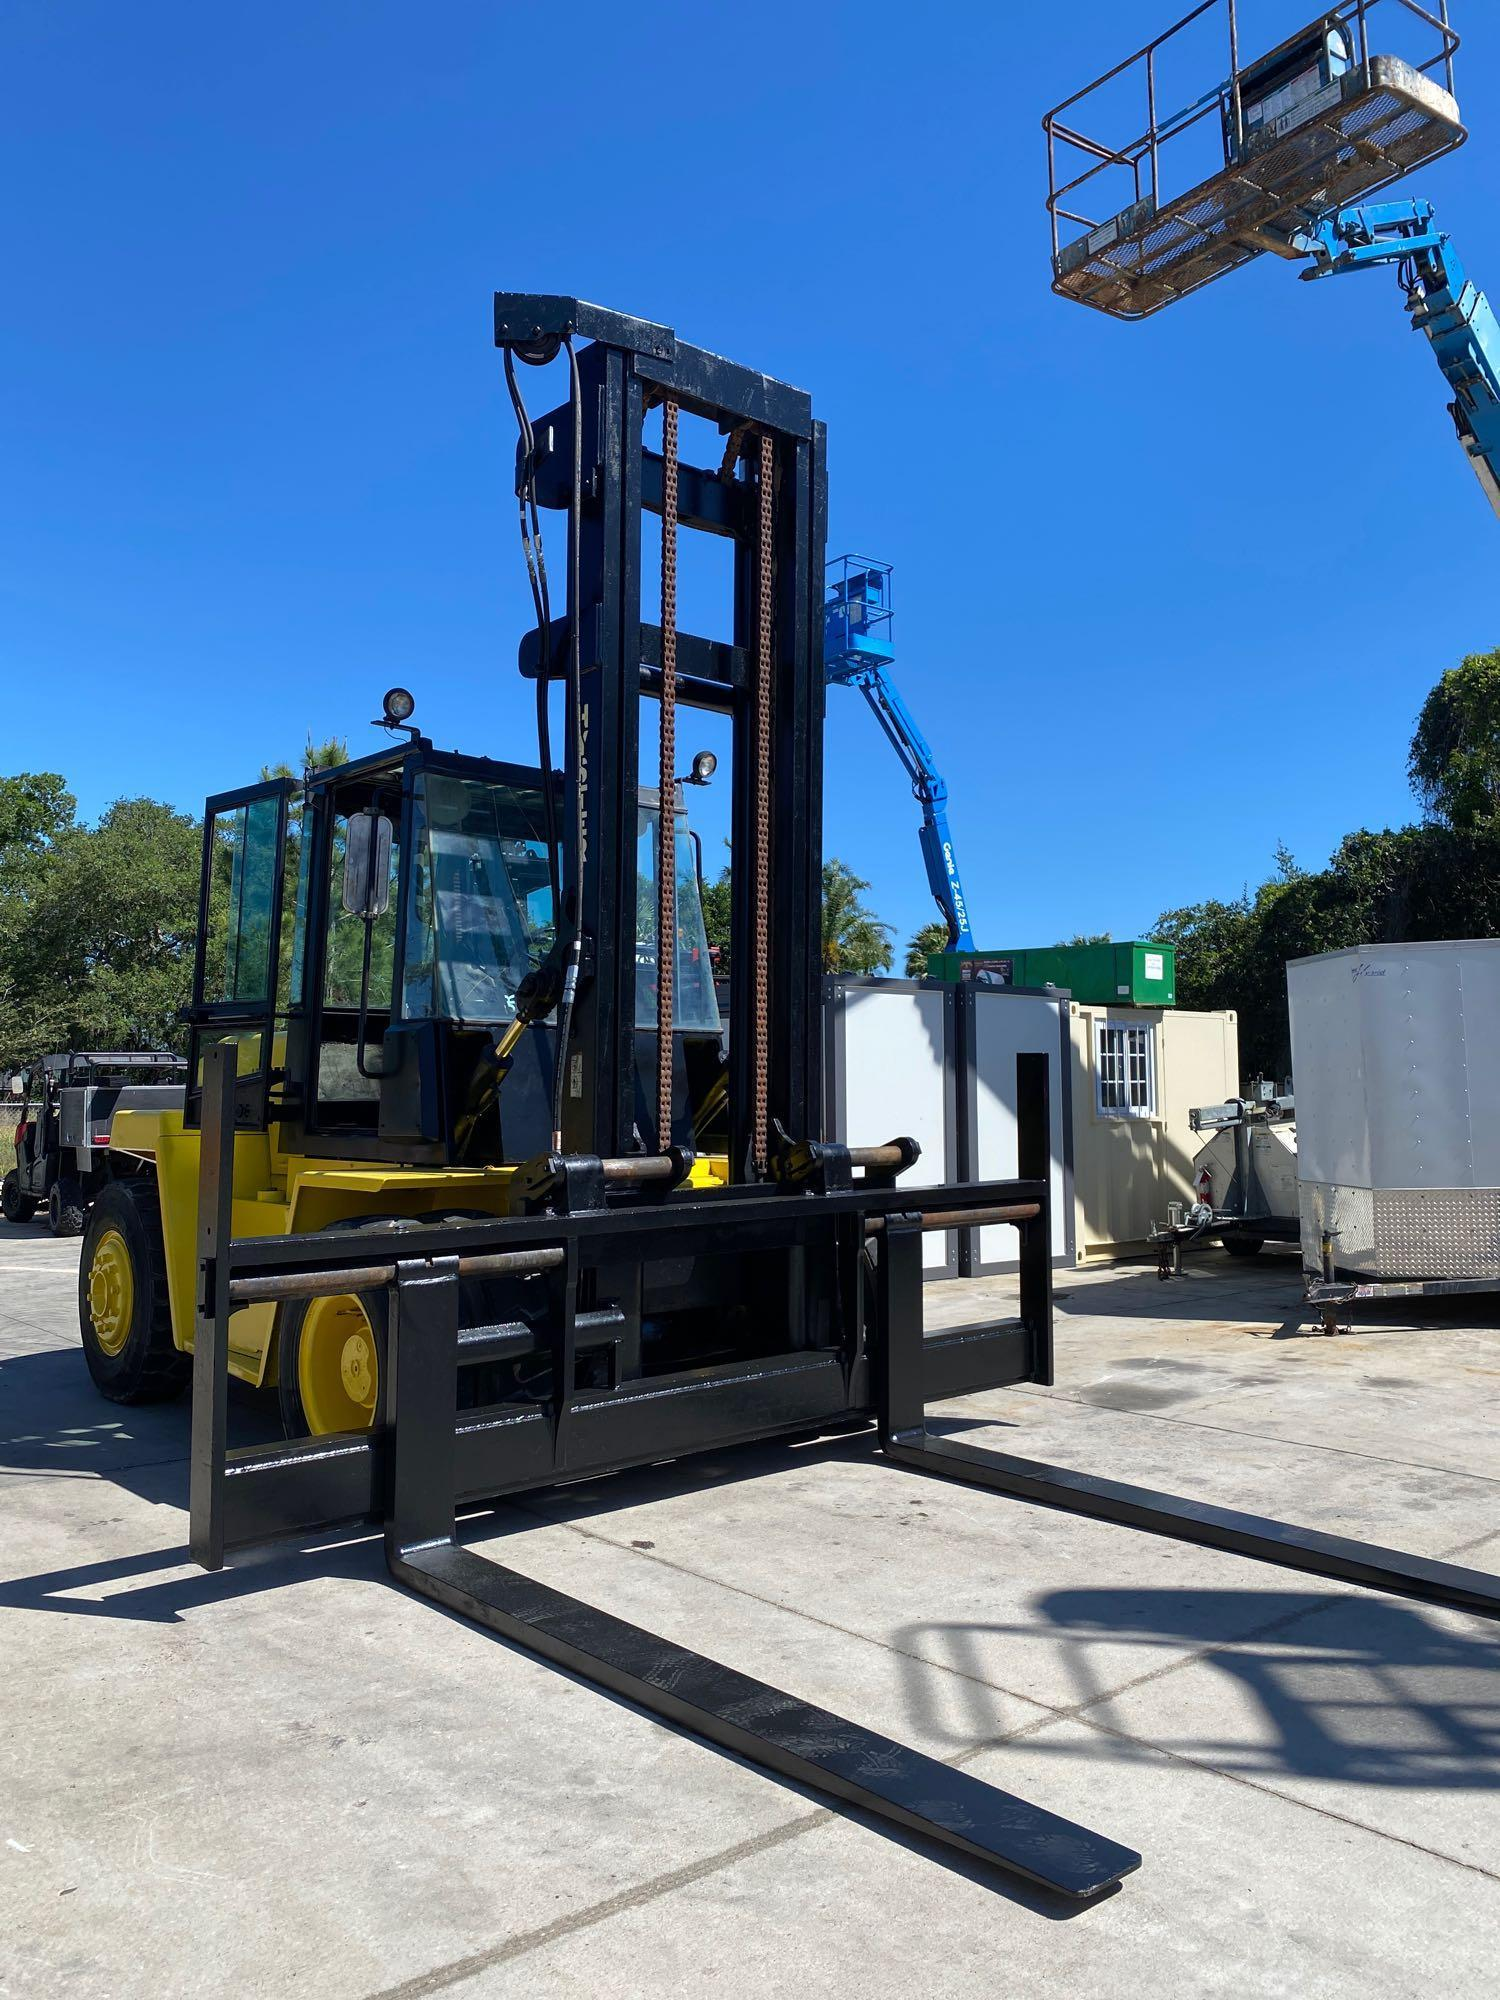 """HYSTER DIESEL FORKLIFT MODEL H190XL2, APPROX. 19,000 LB CAPACITY, 212.6"""" HEIGHT CAPACITY, RUNS AND O - Image 6 of 12"""